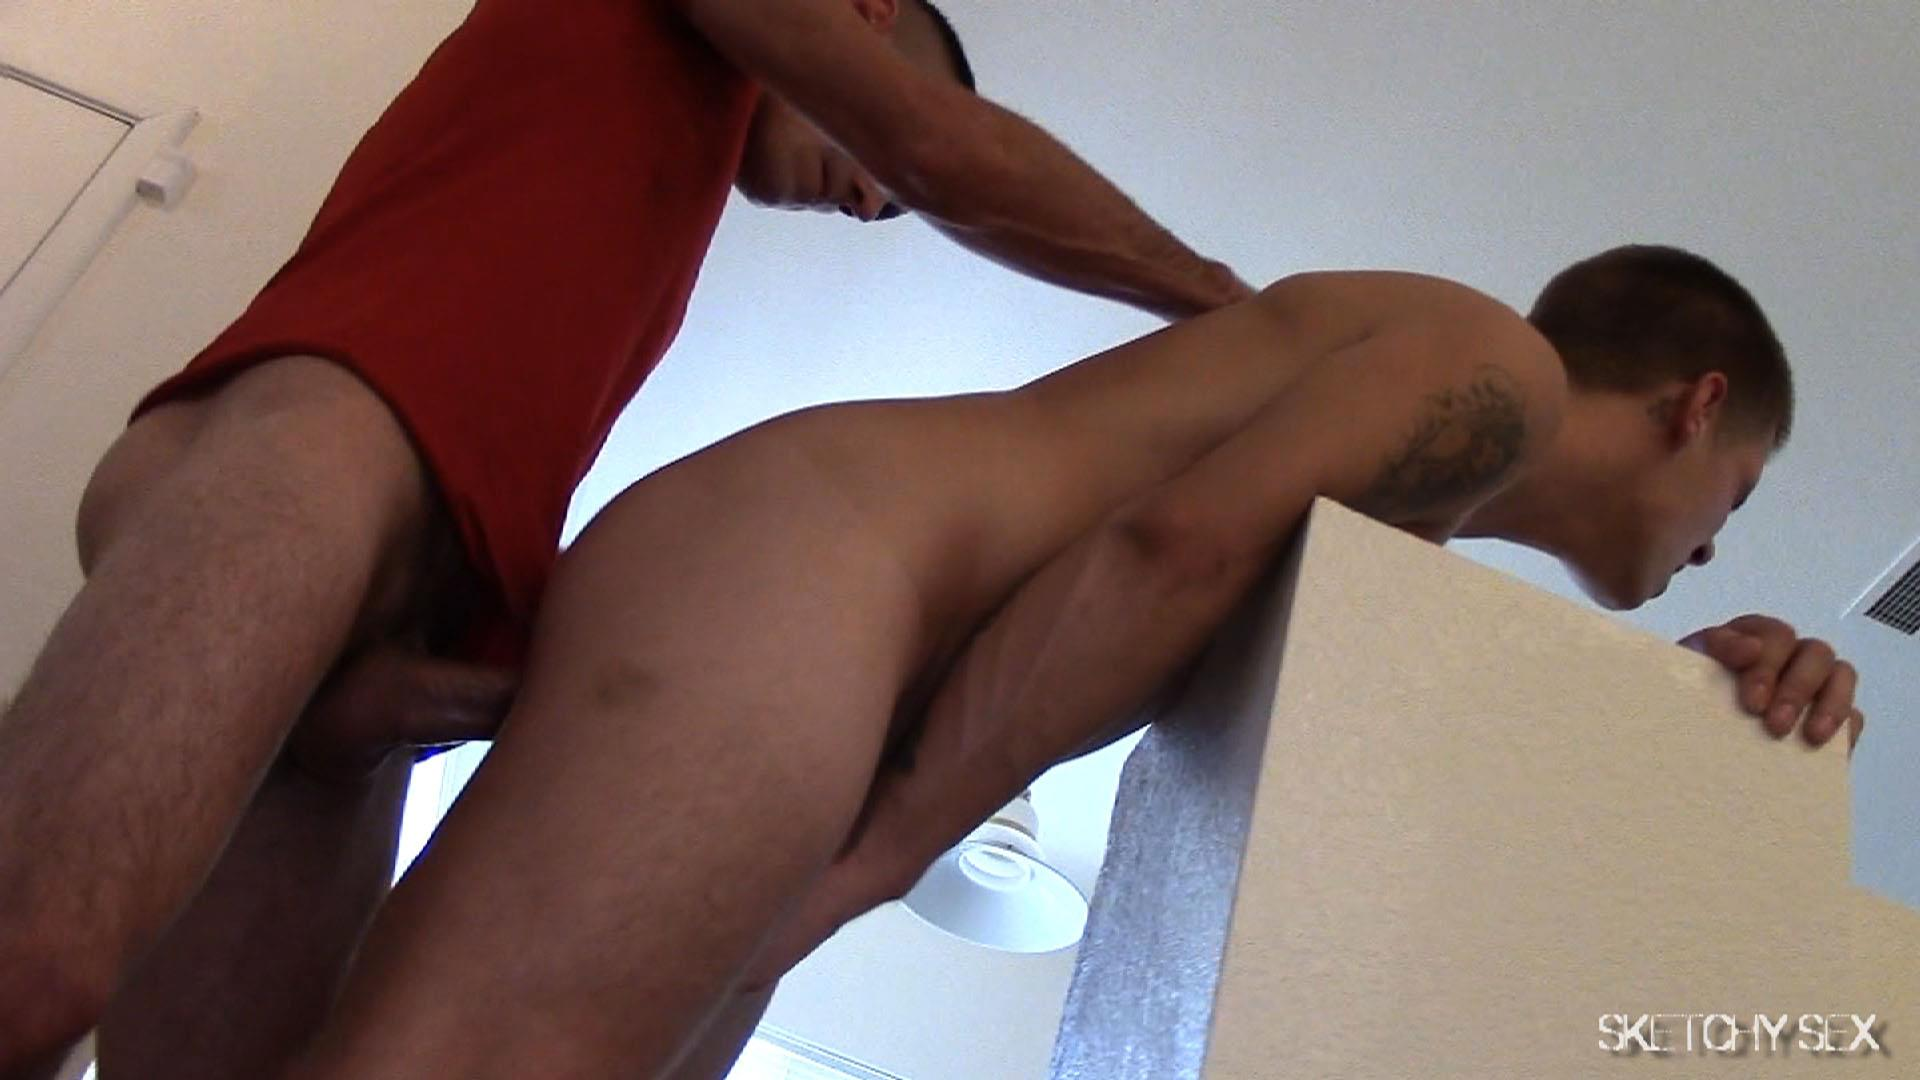 Sketchy-Sex-Nate-Getting-Fucked-Bareback-By-A-10-Inch-Craigslist-Cock-Amateur-Gay-Porn-06 Taking A 10